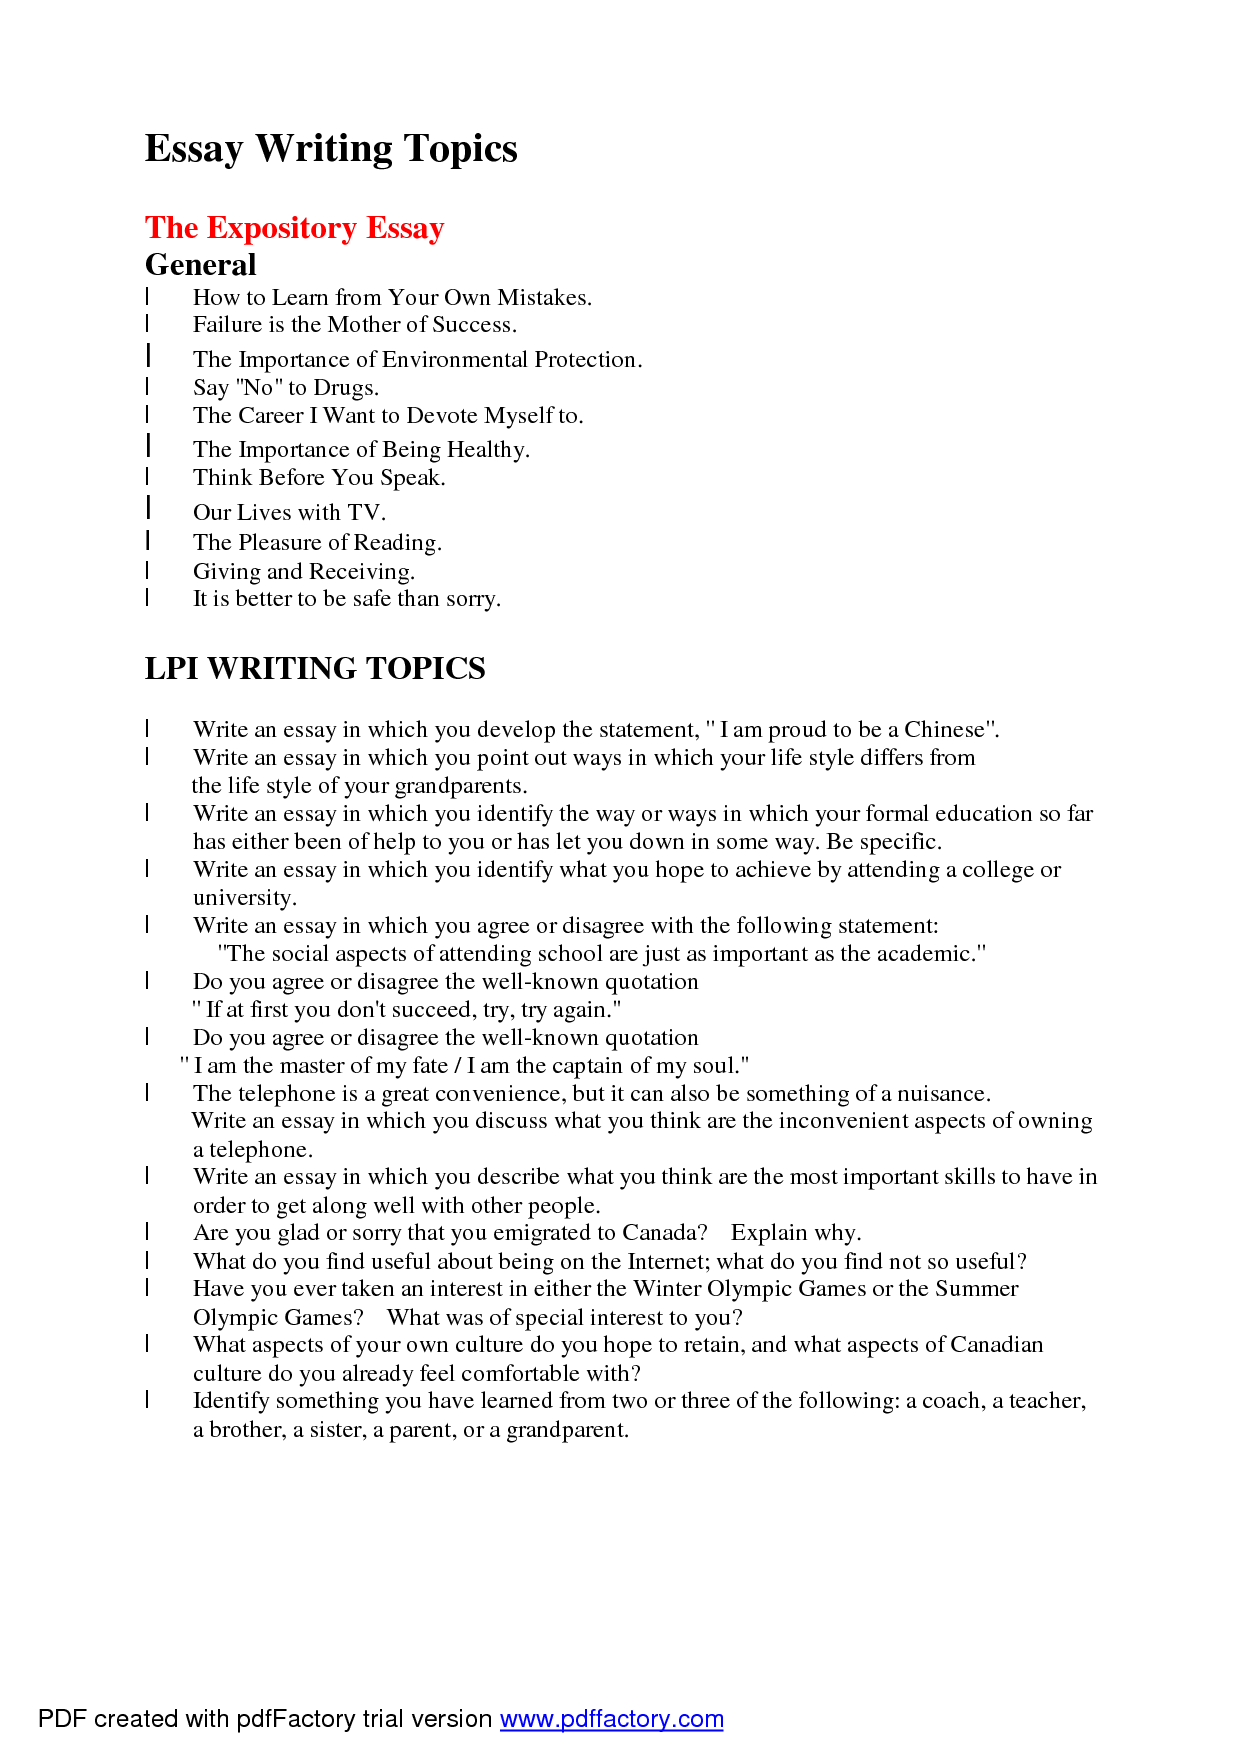 003 Essay Example Topics For An To Write About Arguable Good L Unbelievable Interesting Expository Full